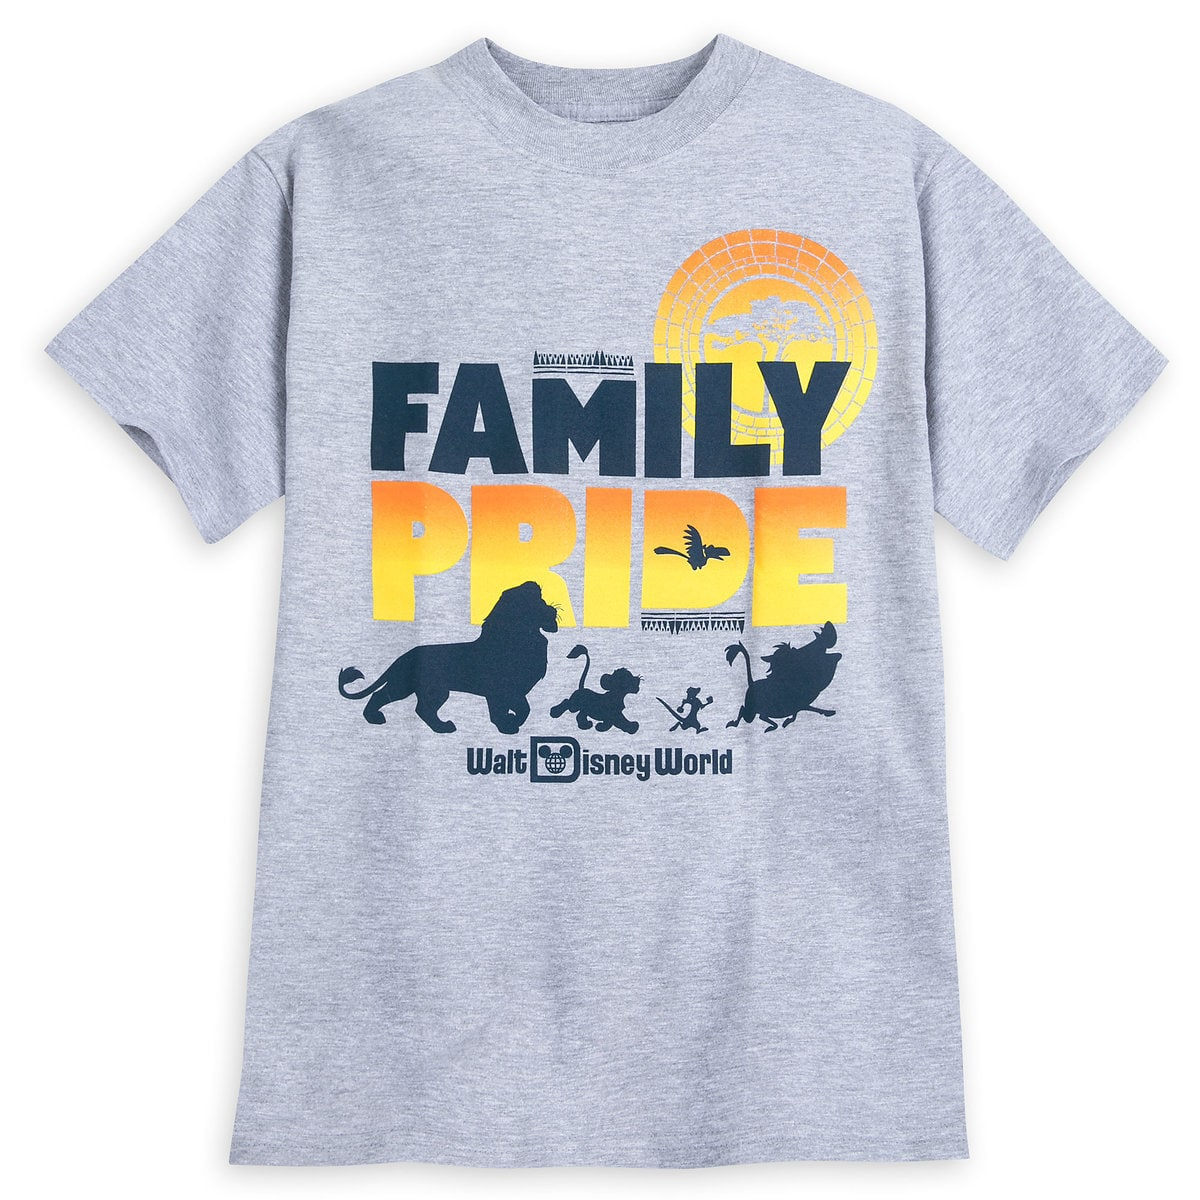 21142ff5 Disney Child Shirt - The Lion King - Family Pride